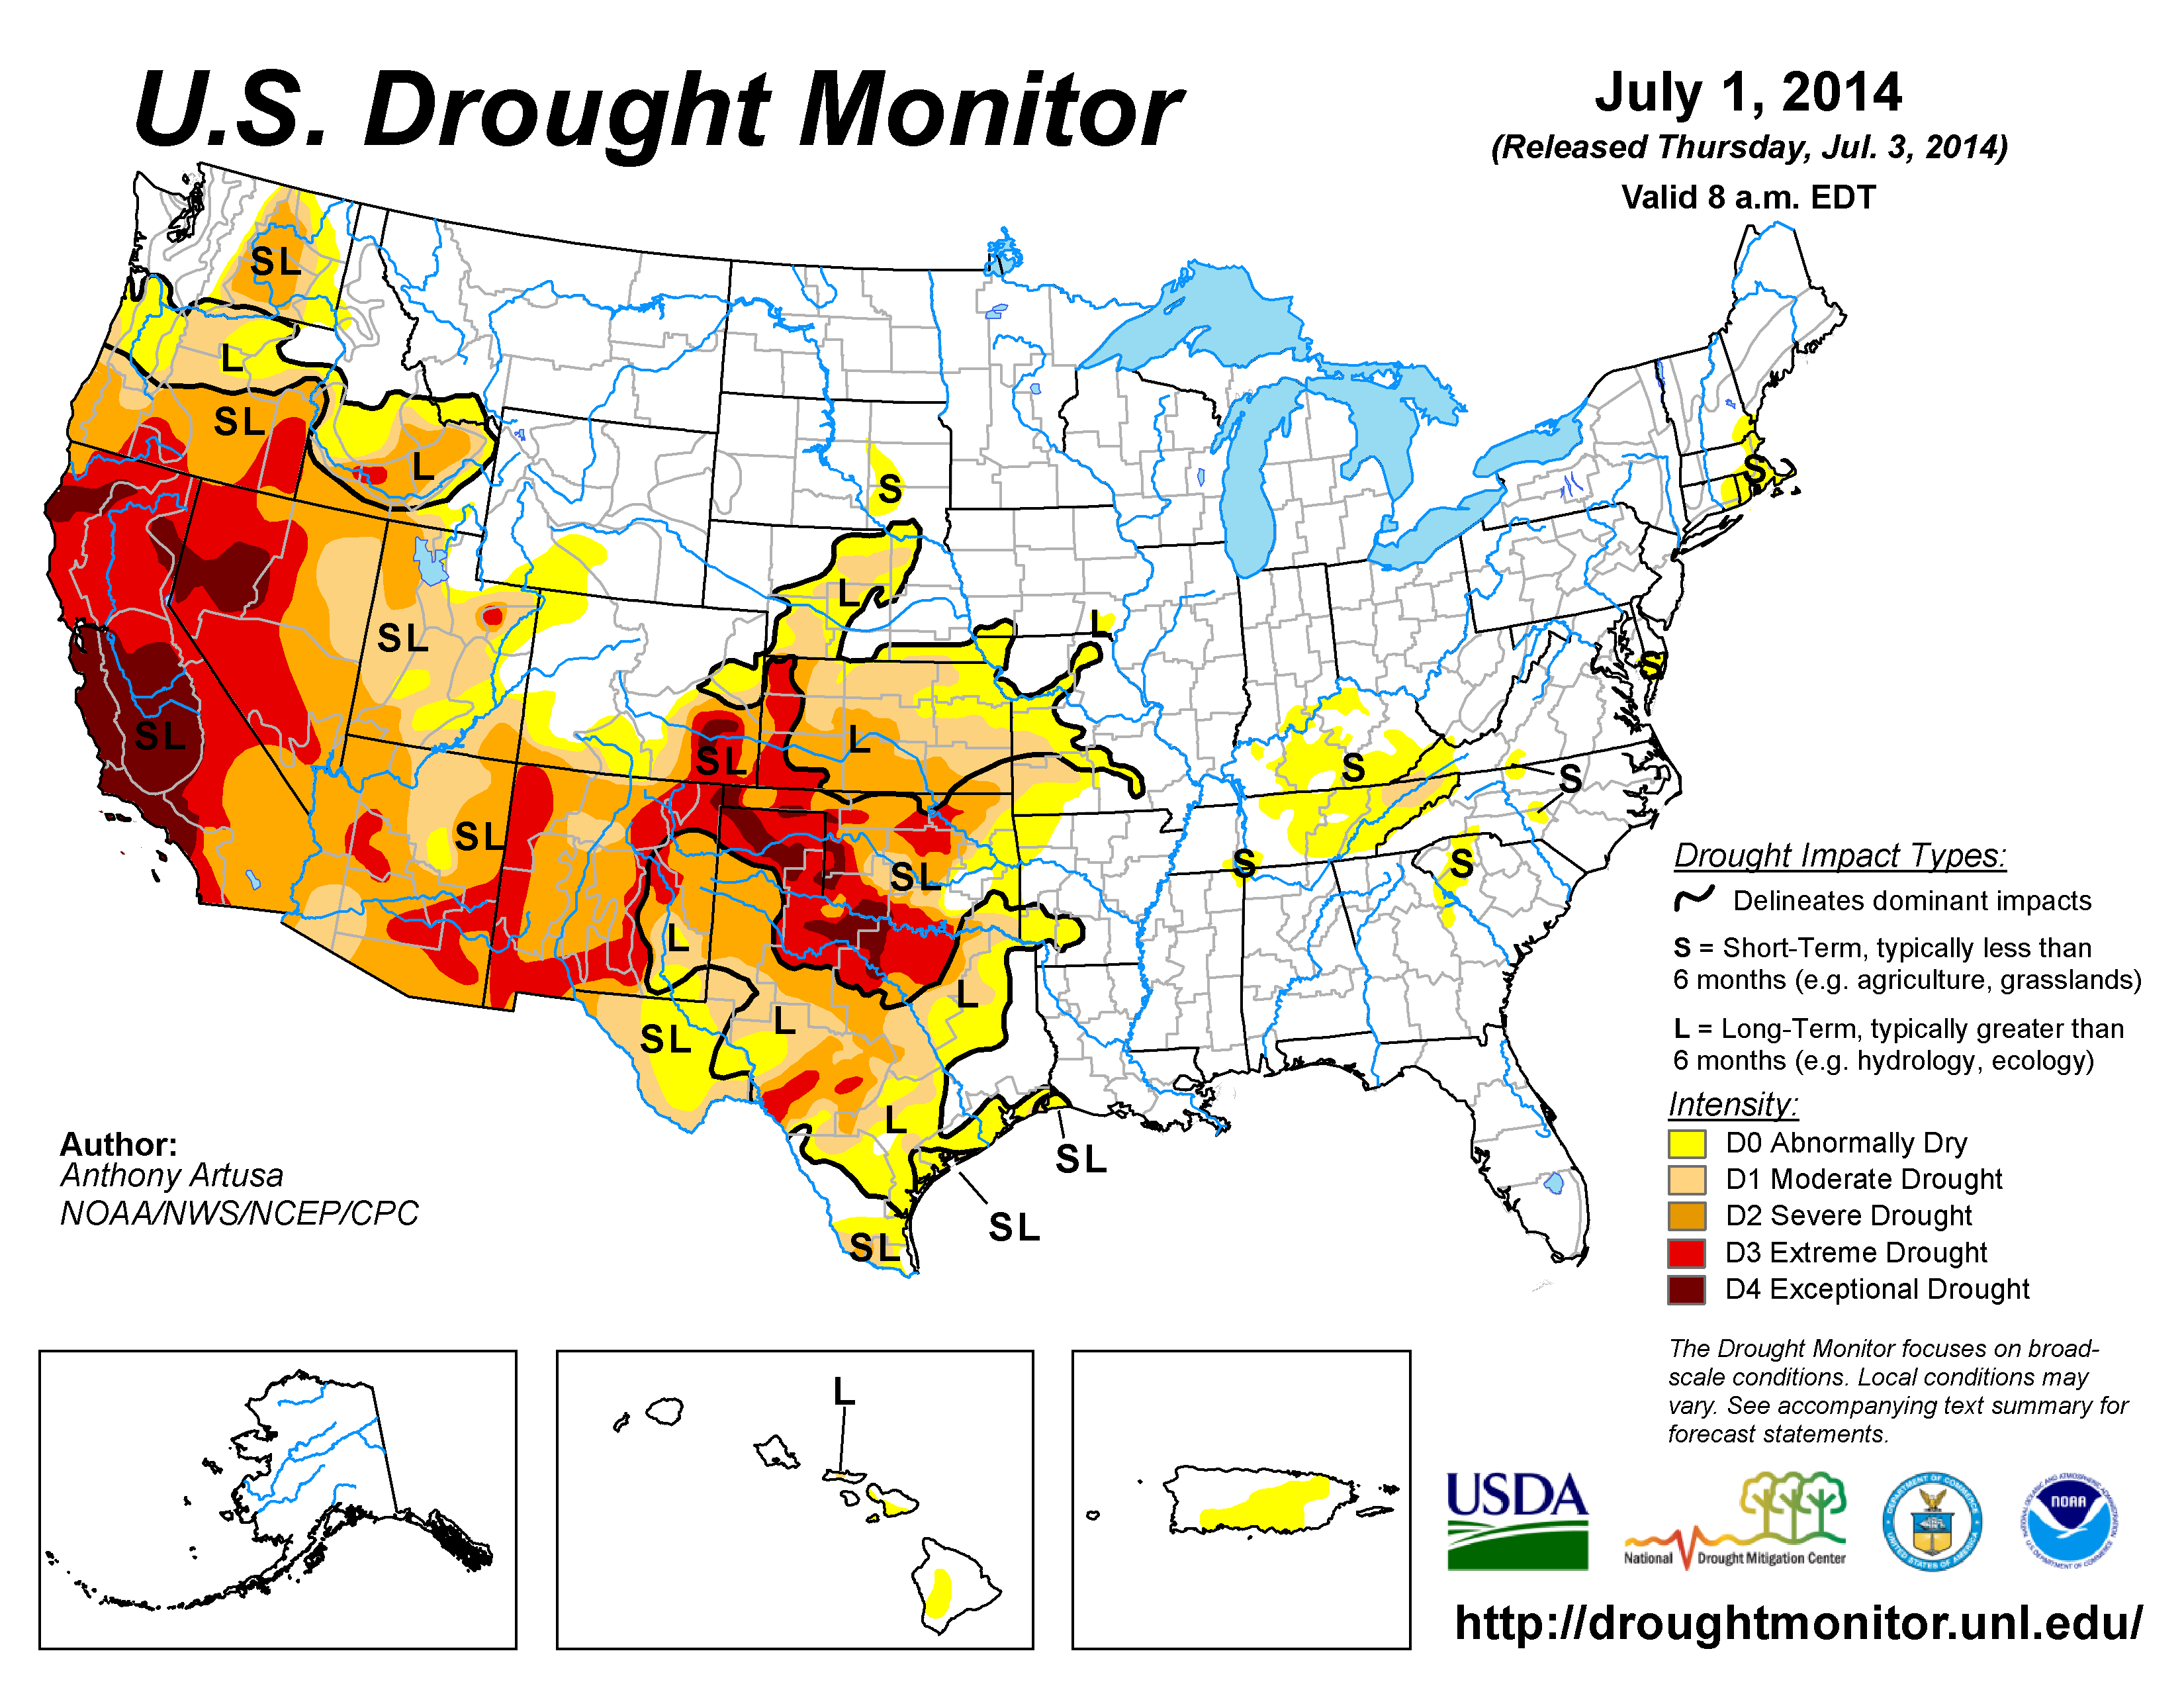 The U.S. Drought Monitor drought map valid July 1, 2014